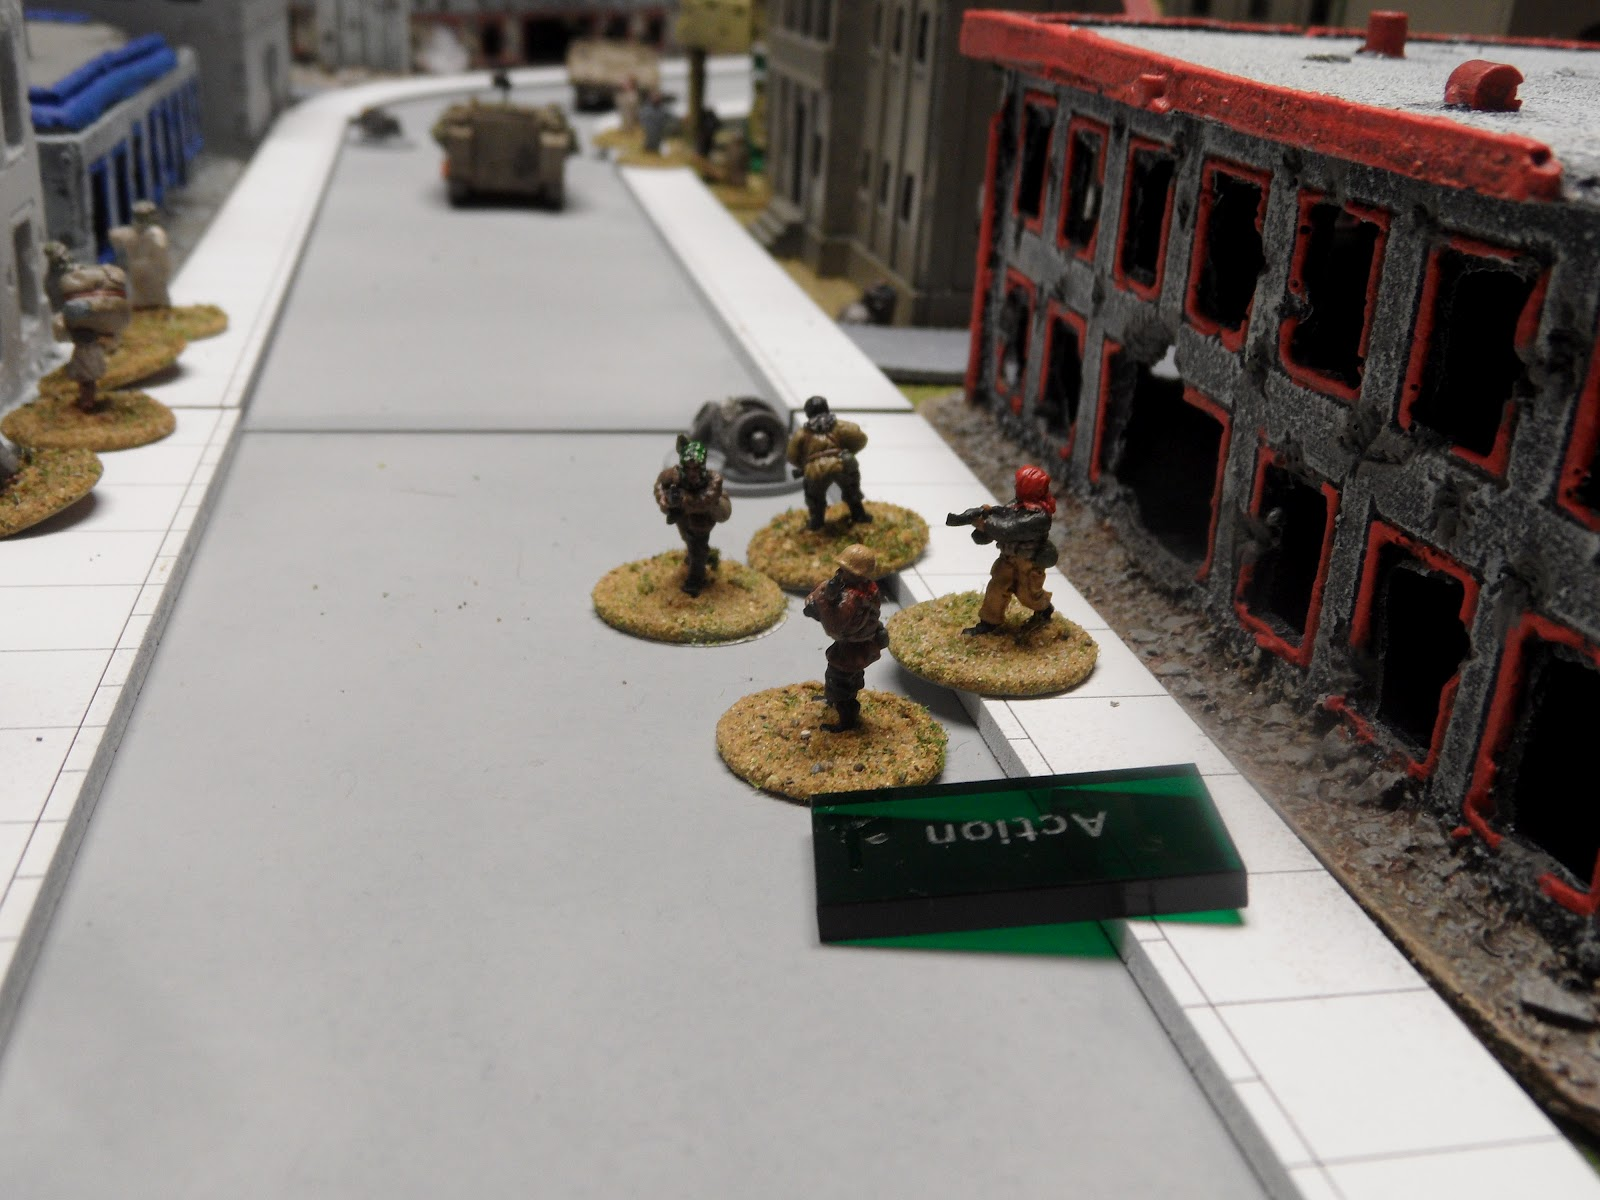 A team rushes into the street and fires off an RPG round at the Zelda's rear...